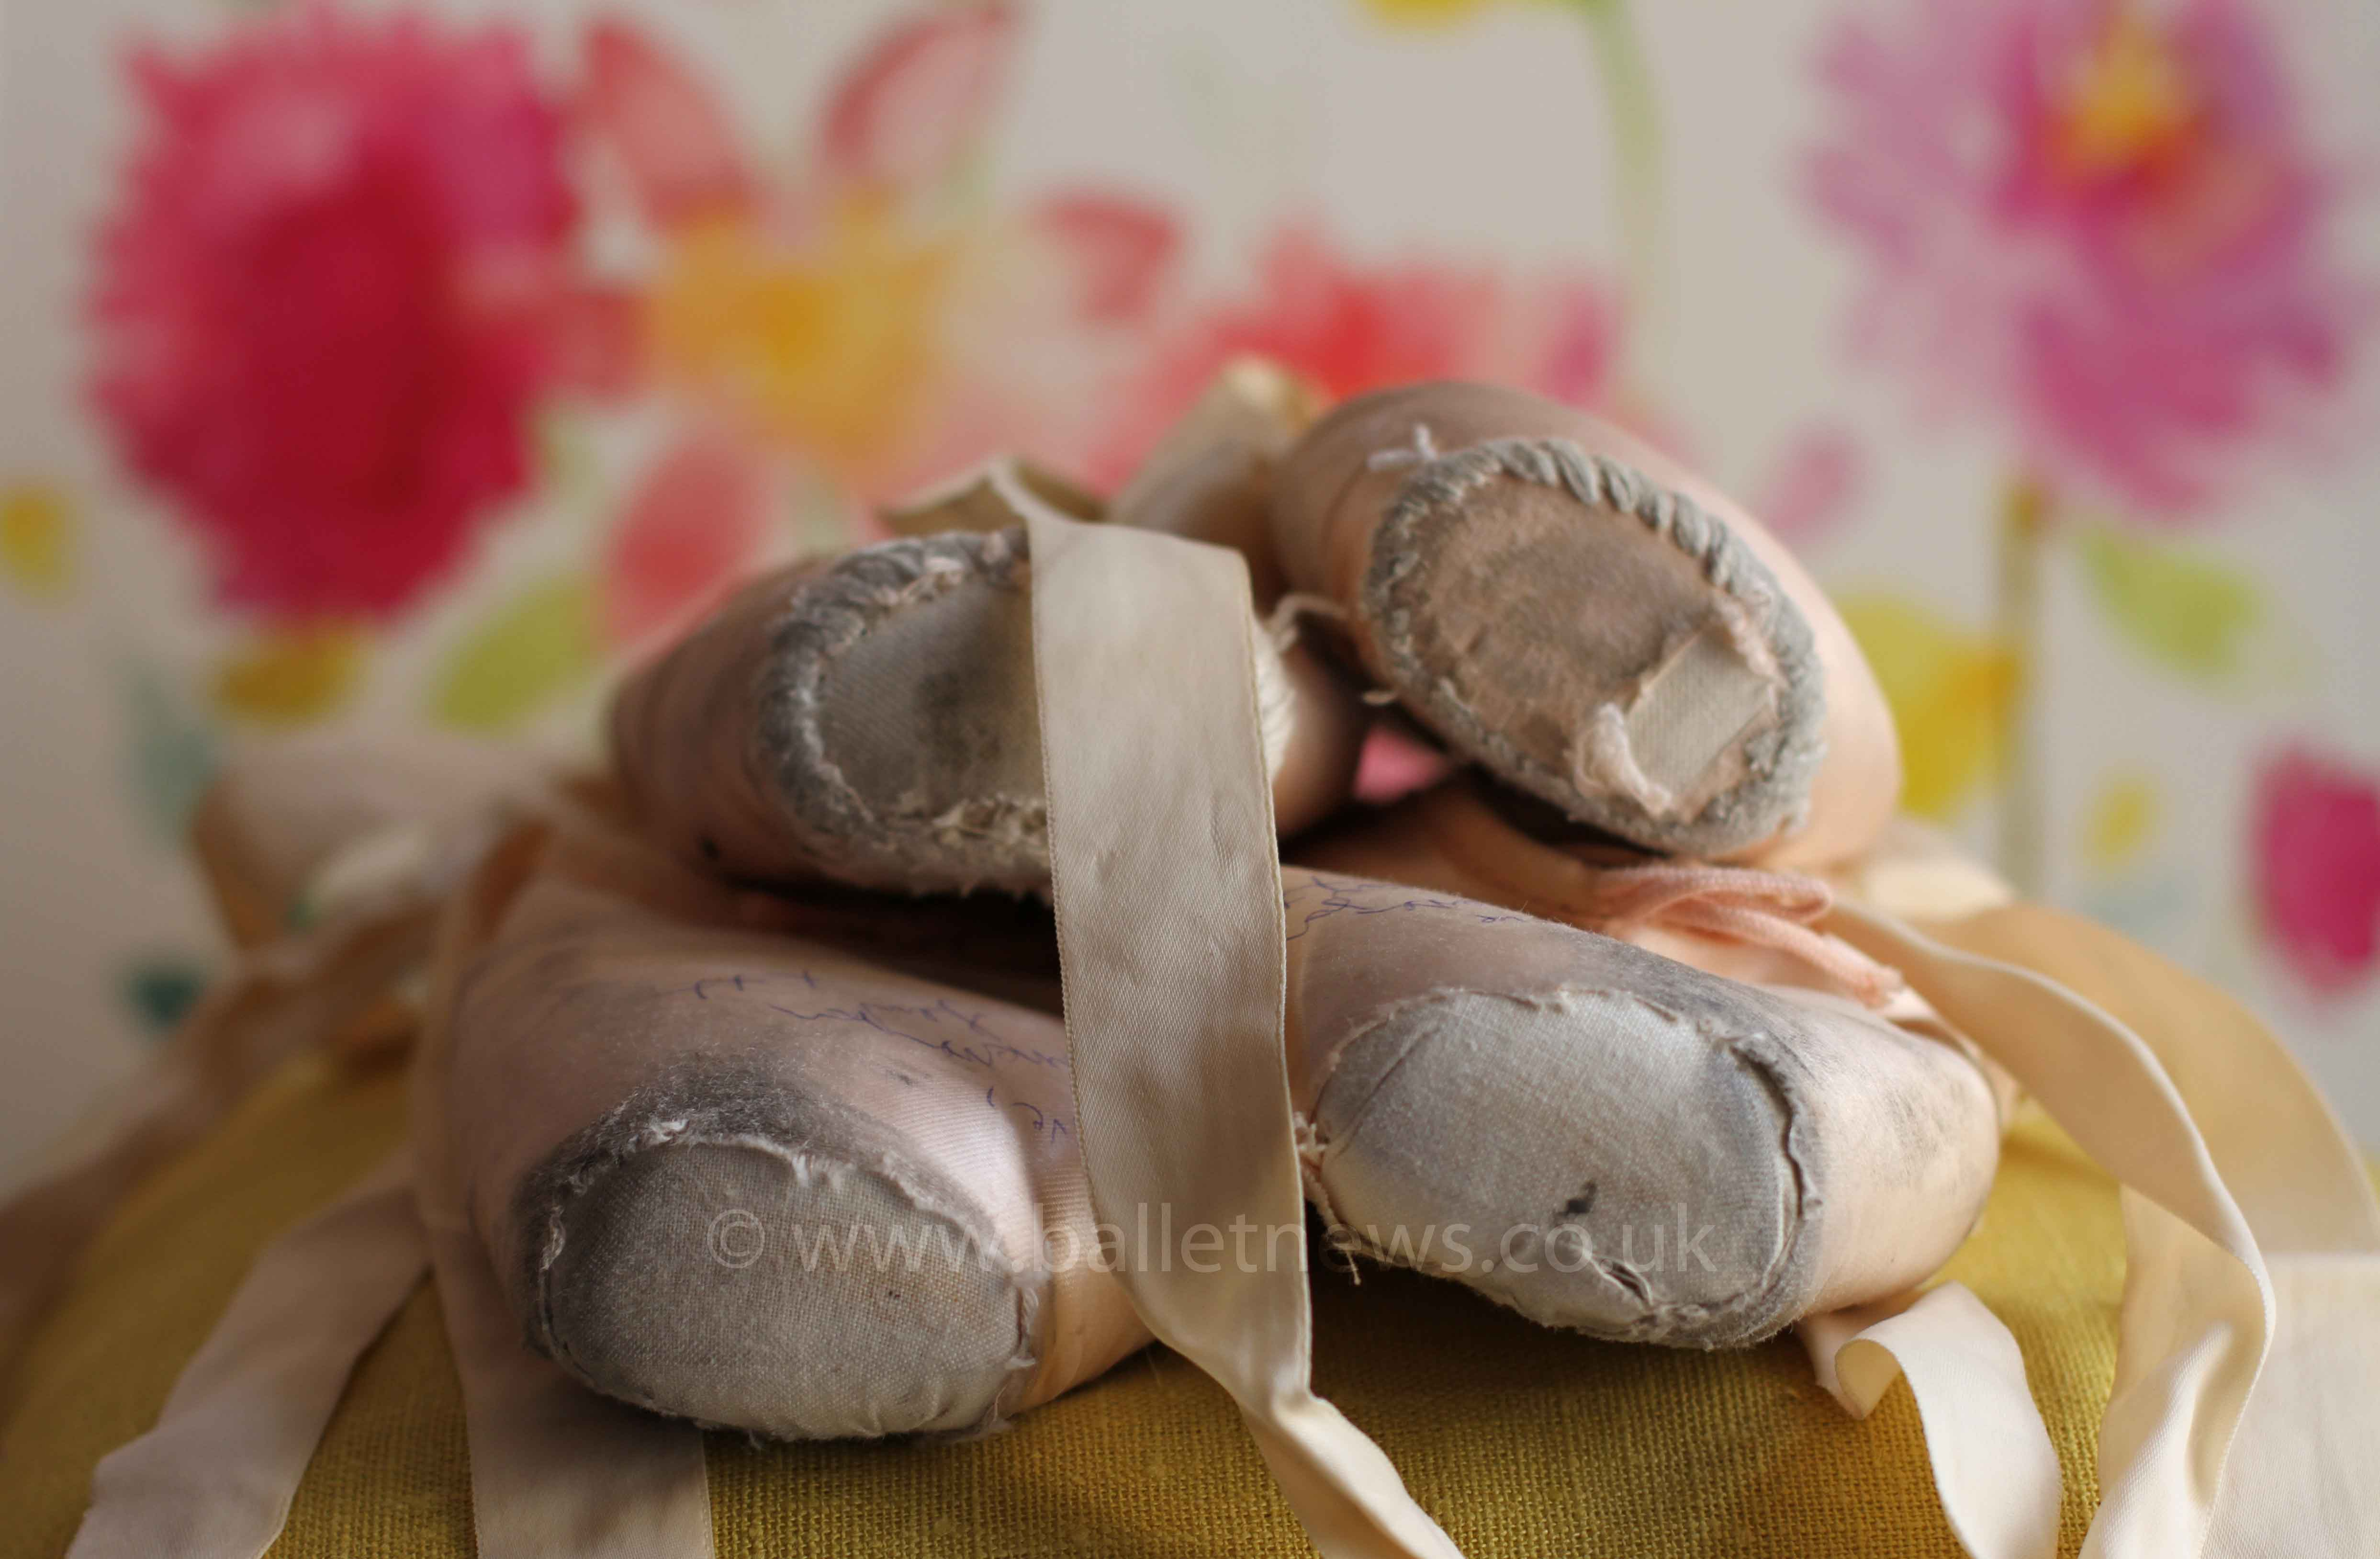 ballet pointe shoes in a pile on a yellow cushion